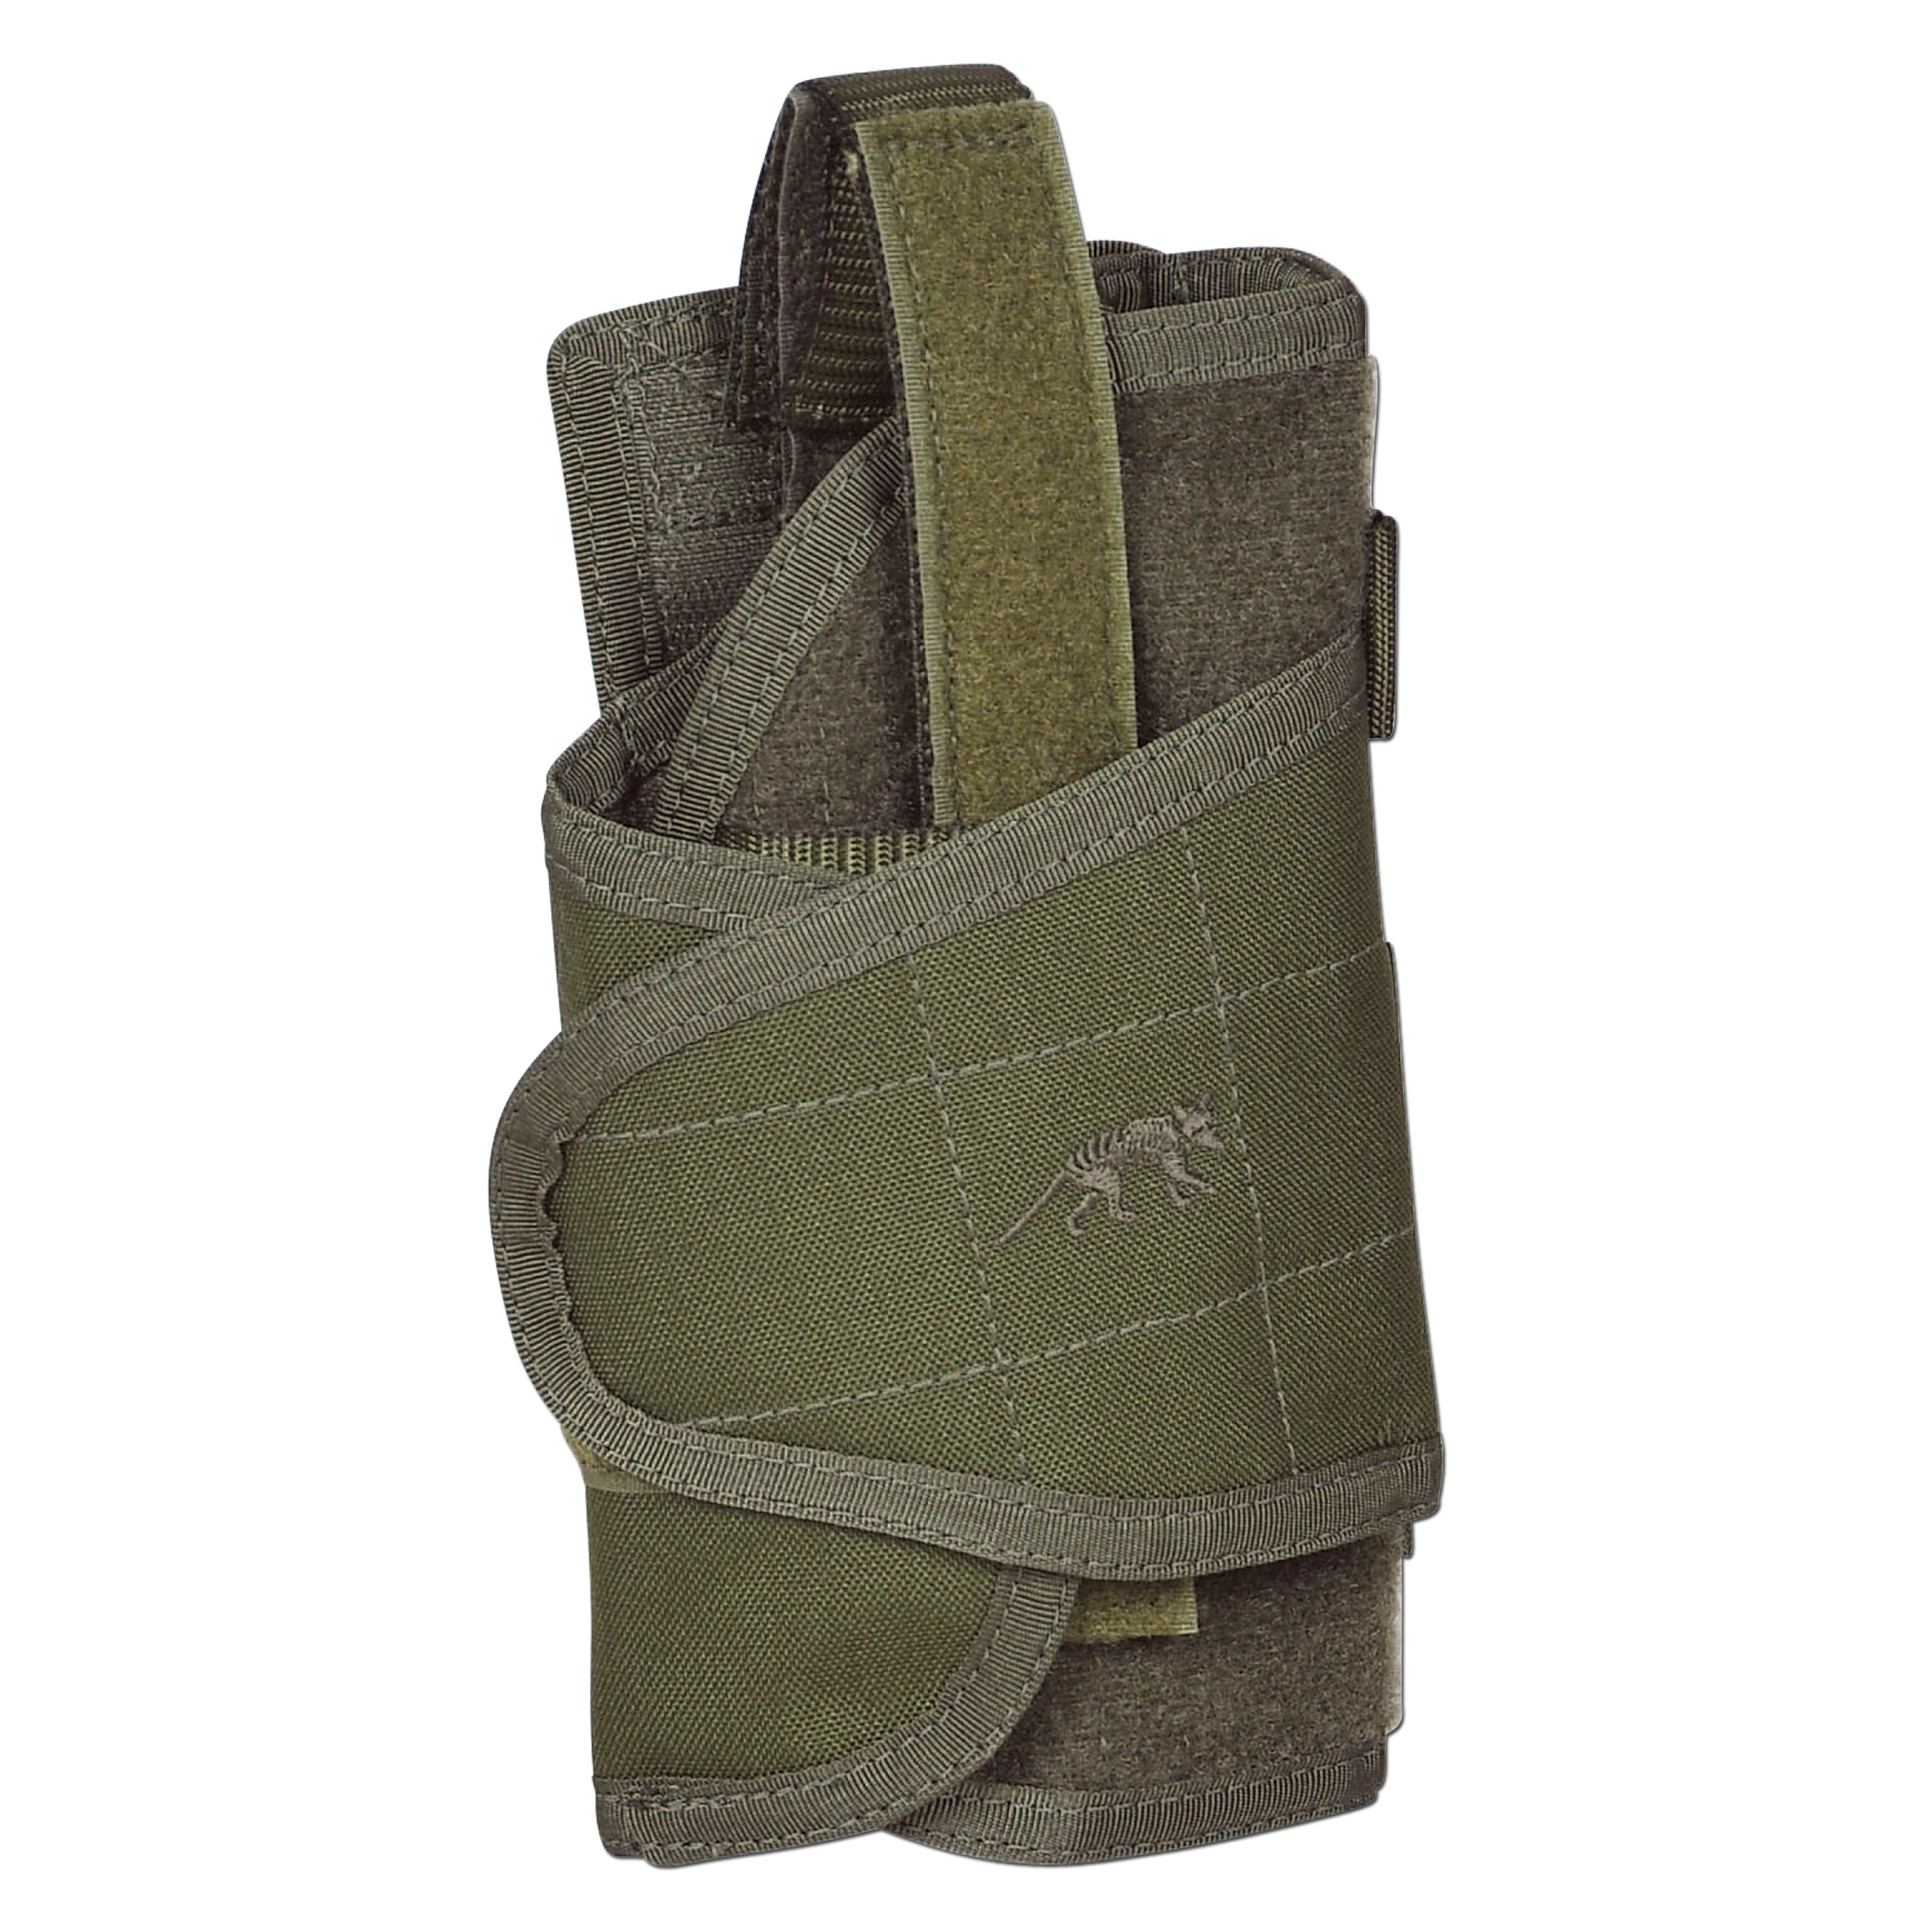 Tt Tactical Holster MKII Olive